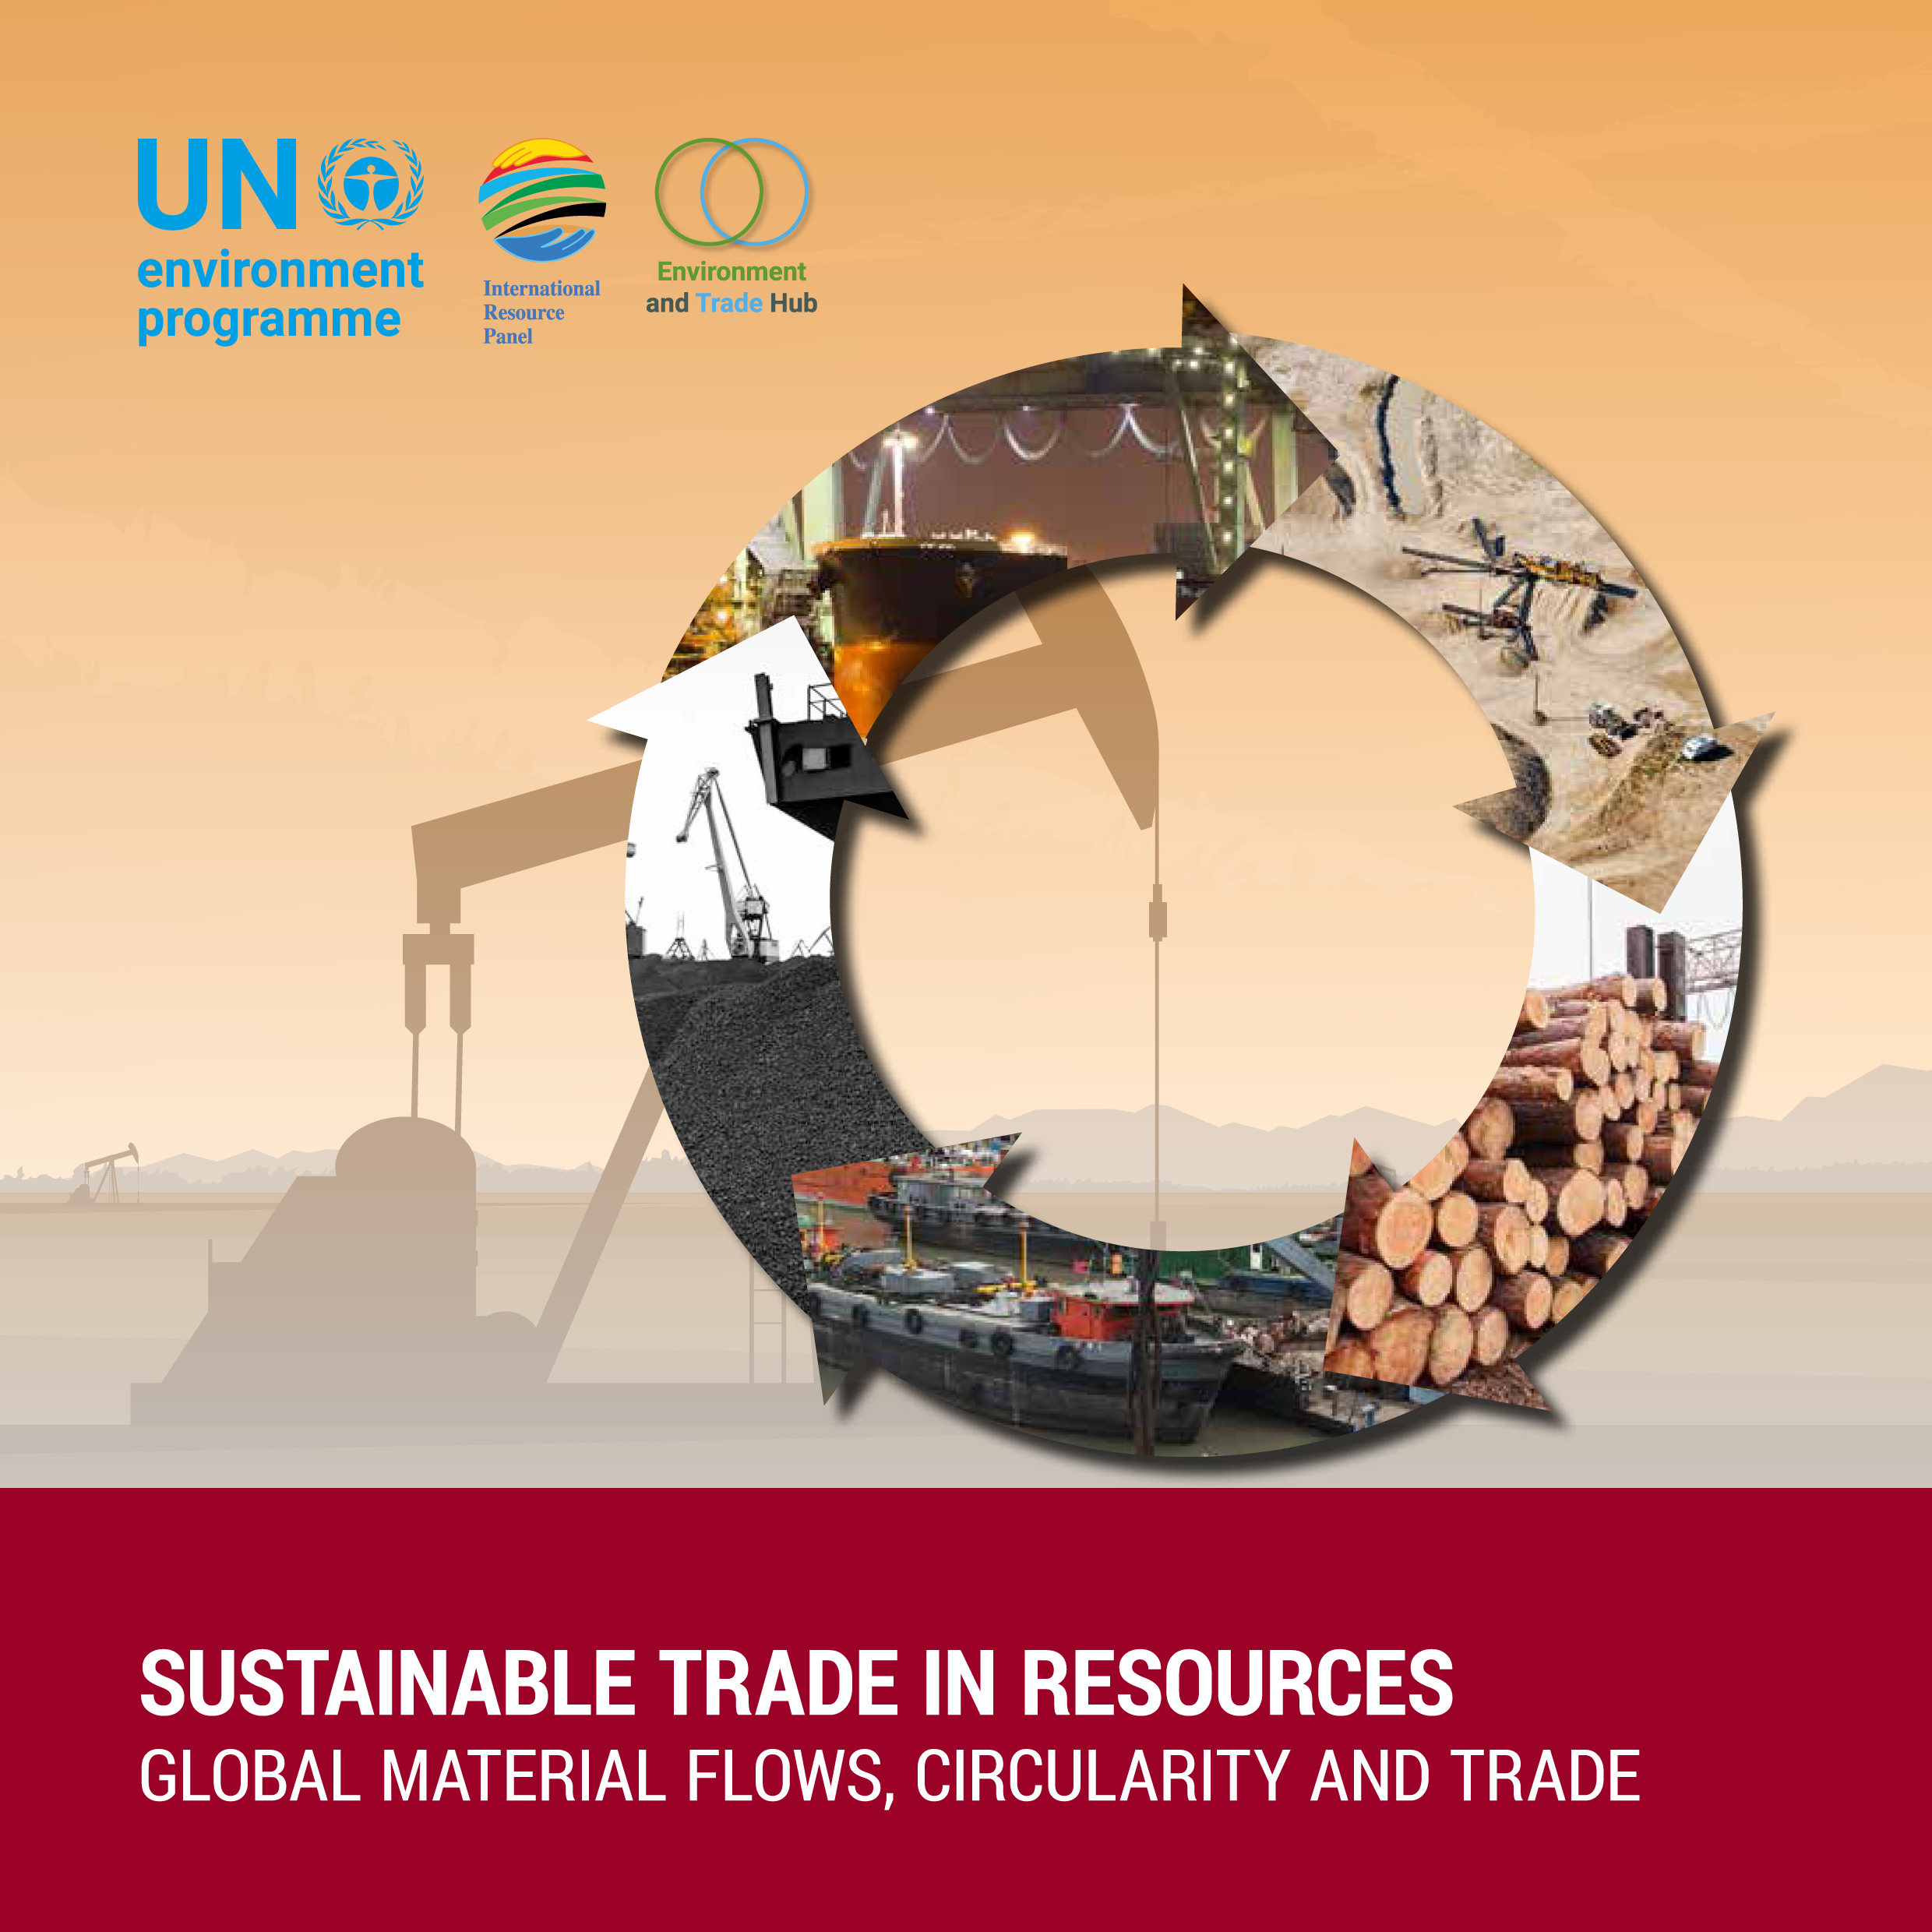 SUSTAINABLE TRADE IN RESOURCES